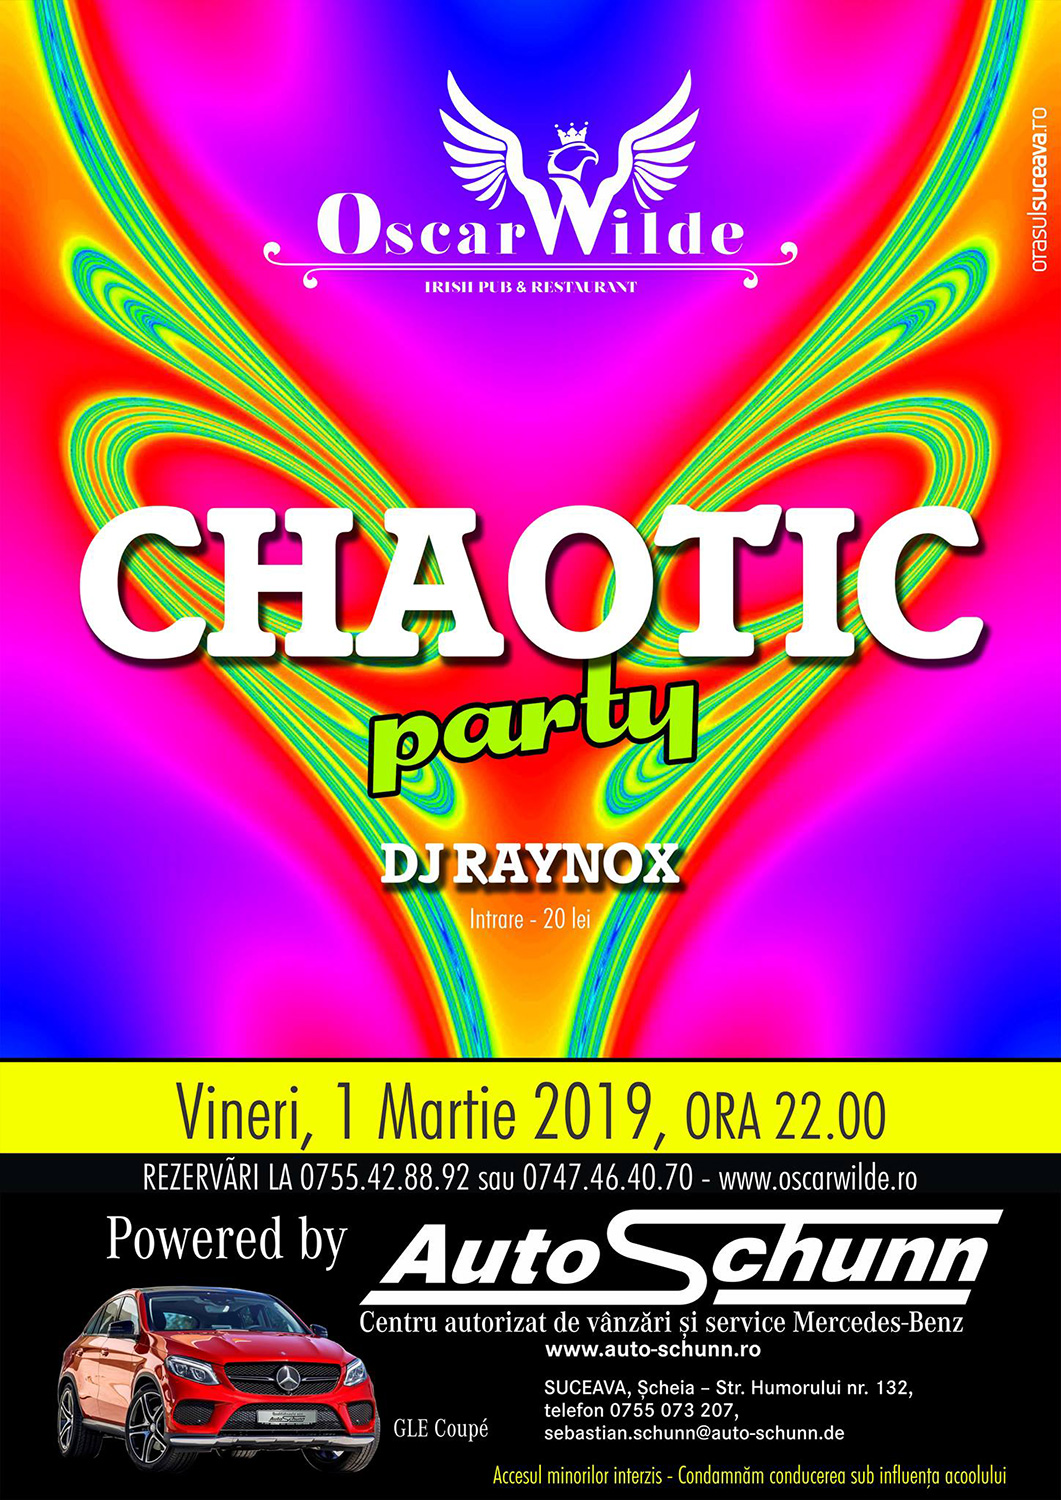 Chaotic Party